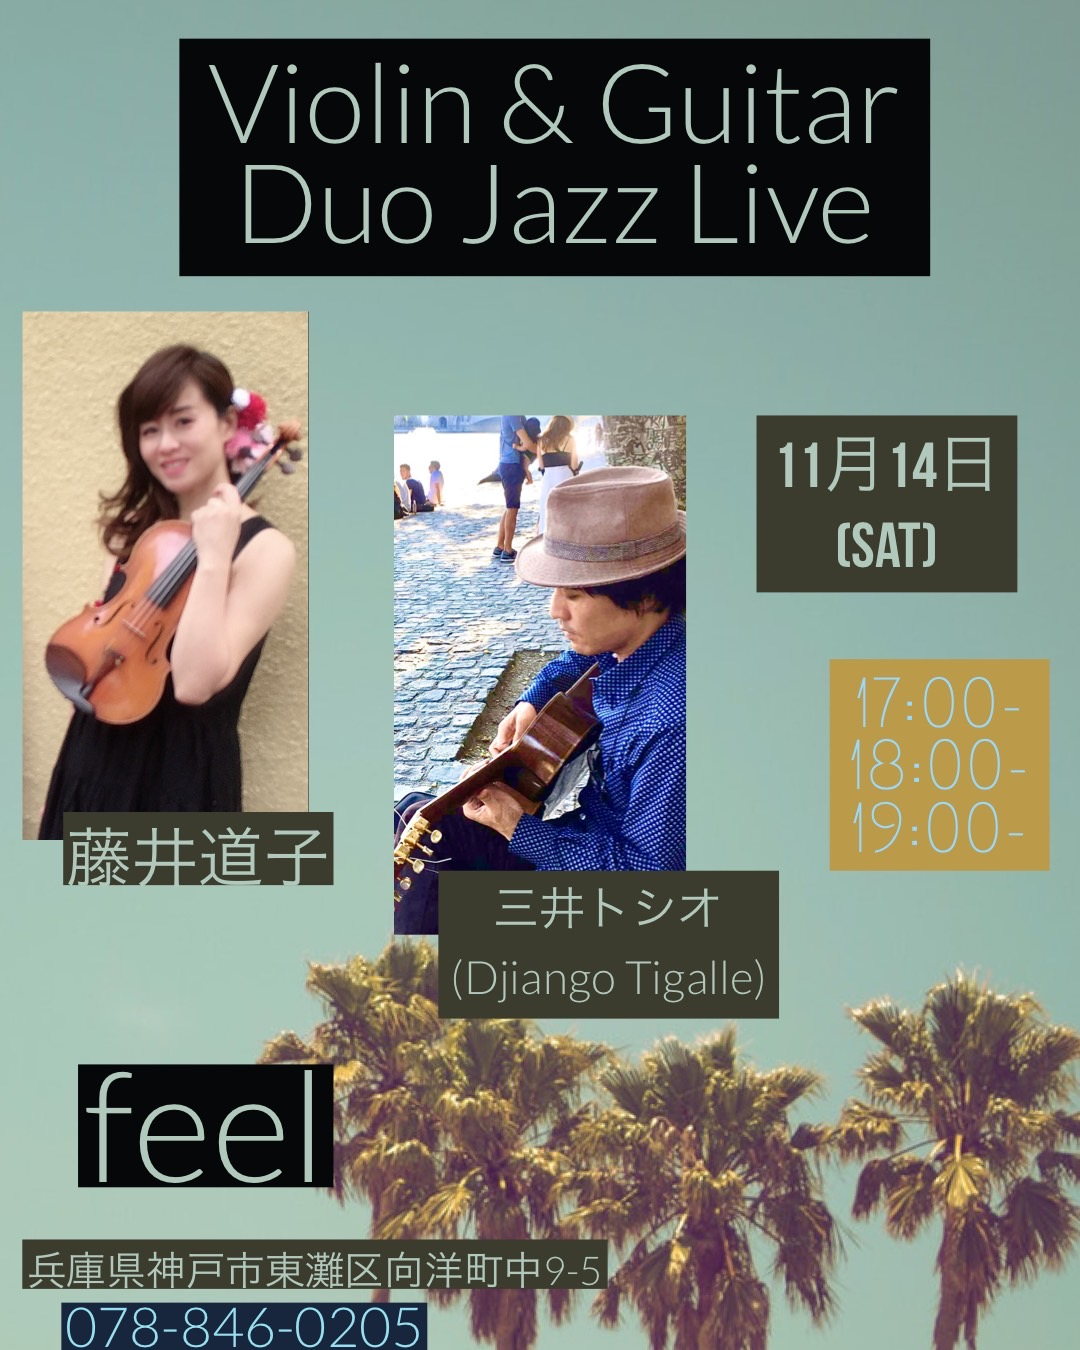 Violin & Guitar Duo Jazz Live